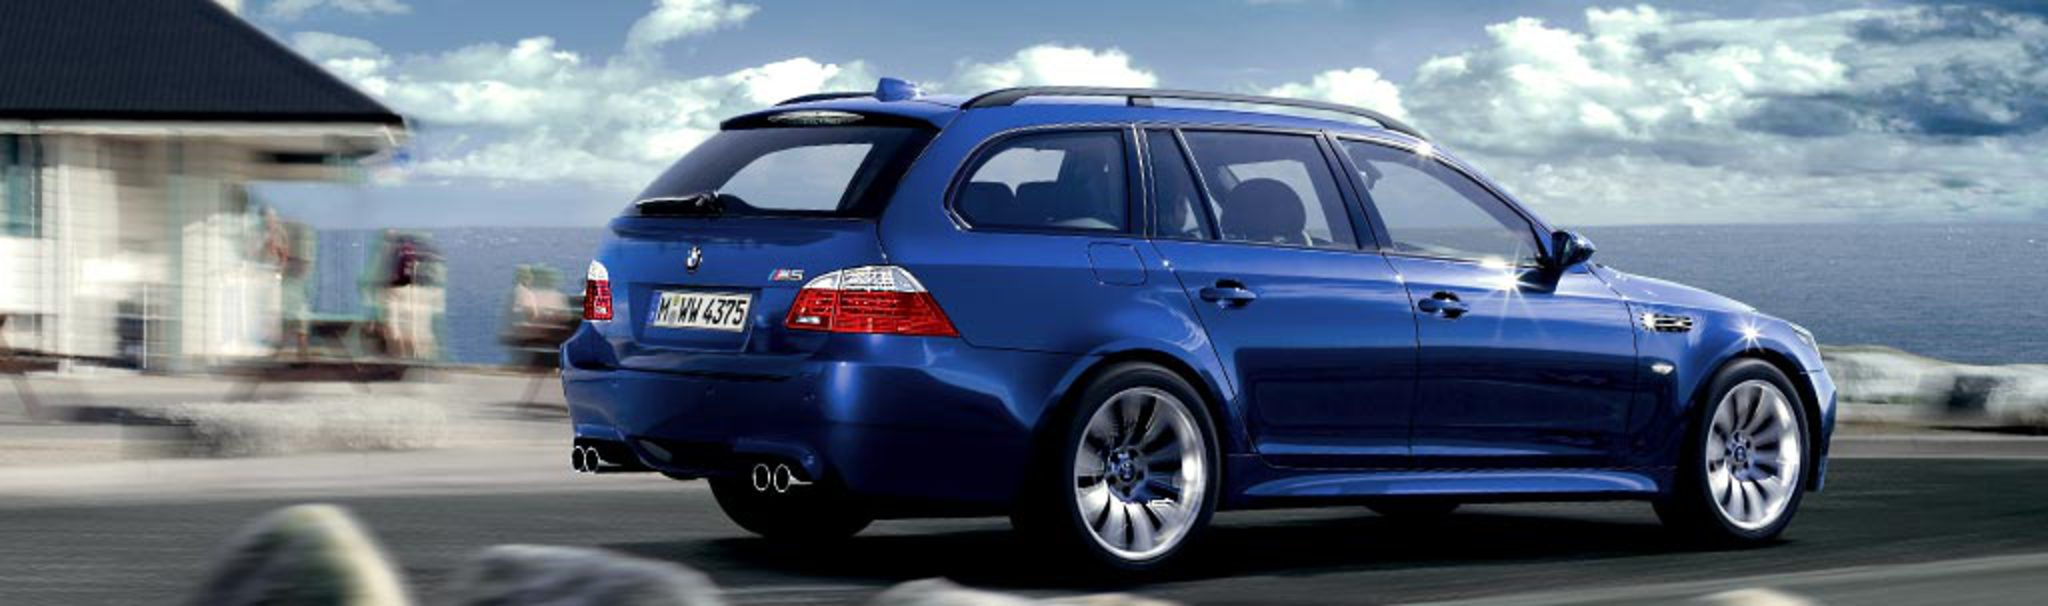 Performance weight of the BMW M5 Touring.